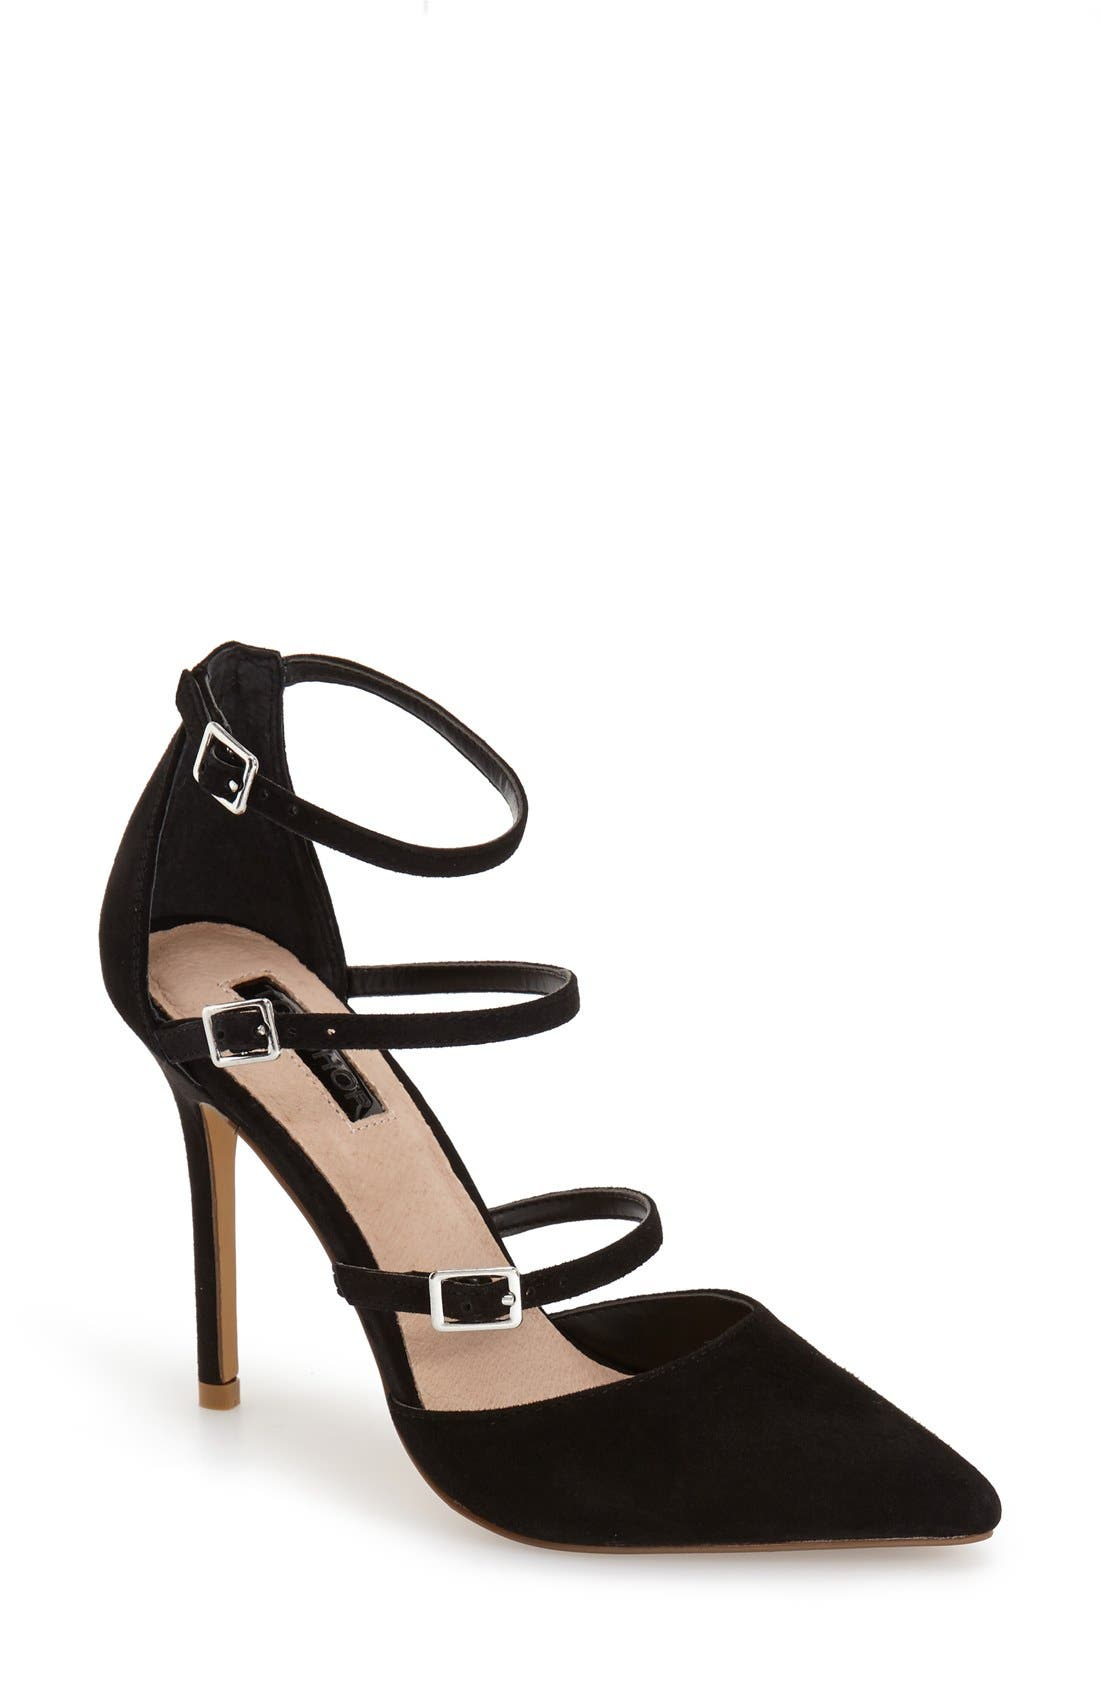 Alternate Image 1 Selected - Topshop 'Giselle' Buckle Sandal (Women)